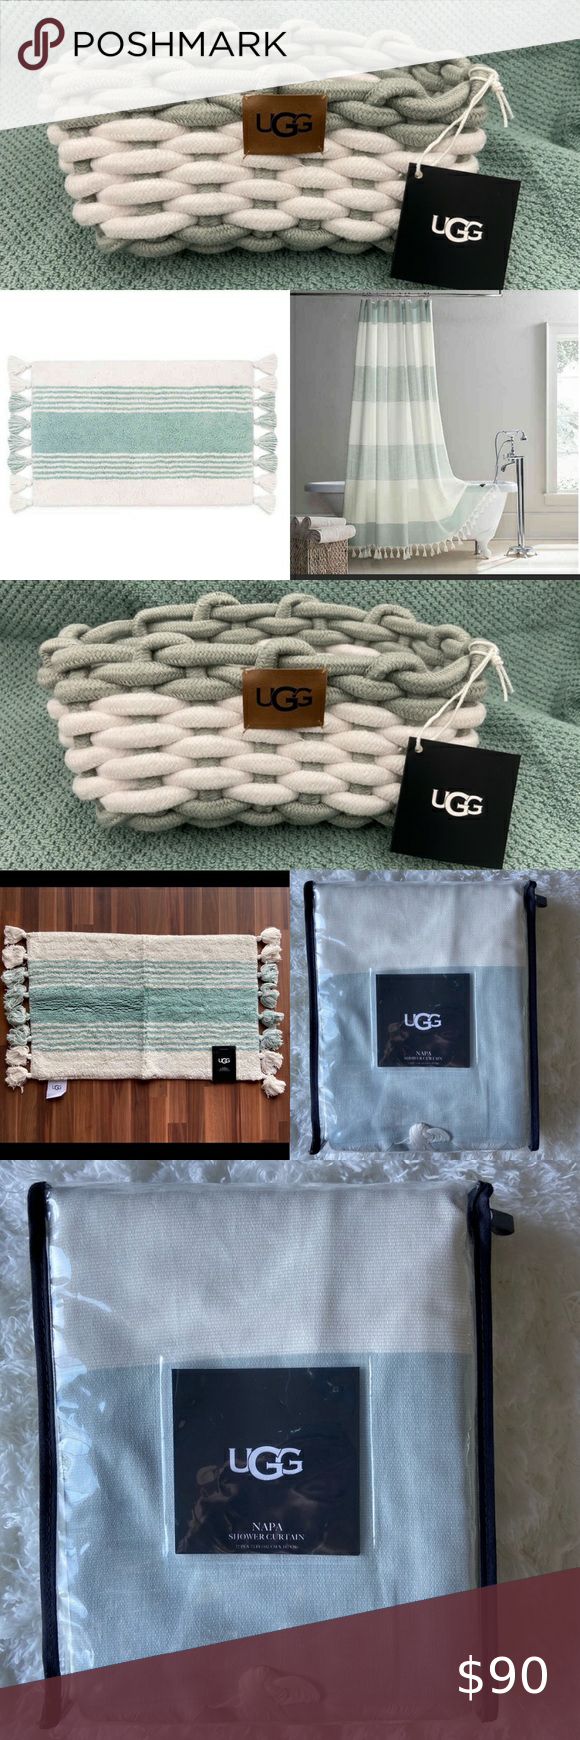 Ugg Napa Shower Curtain Storage Bin Rug Combo Shower Curtain